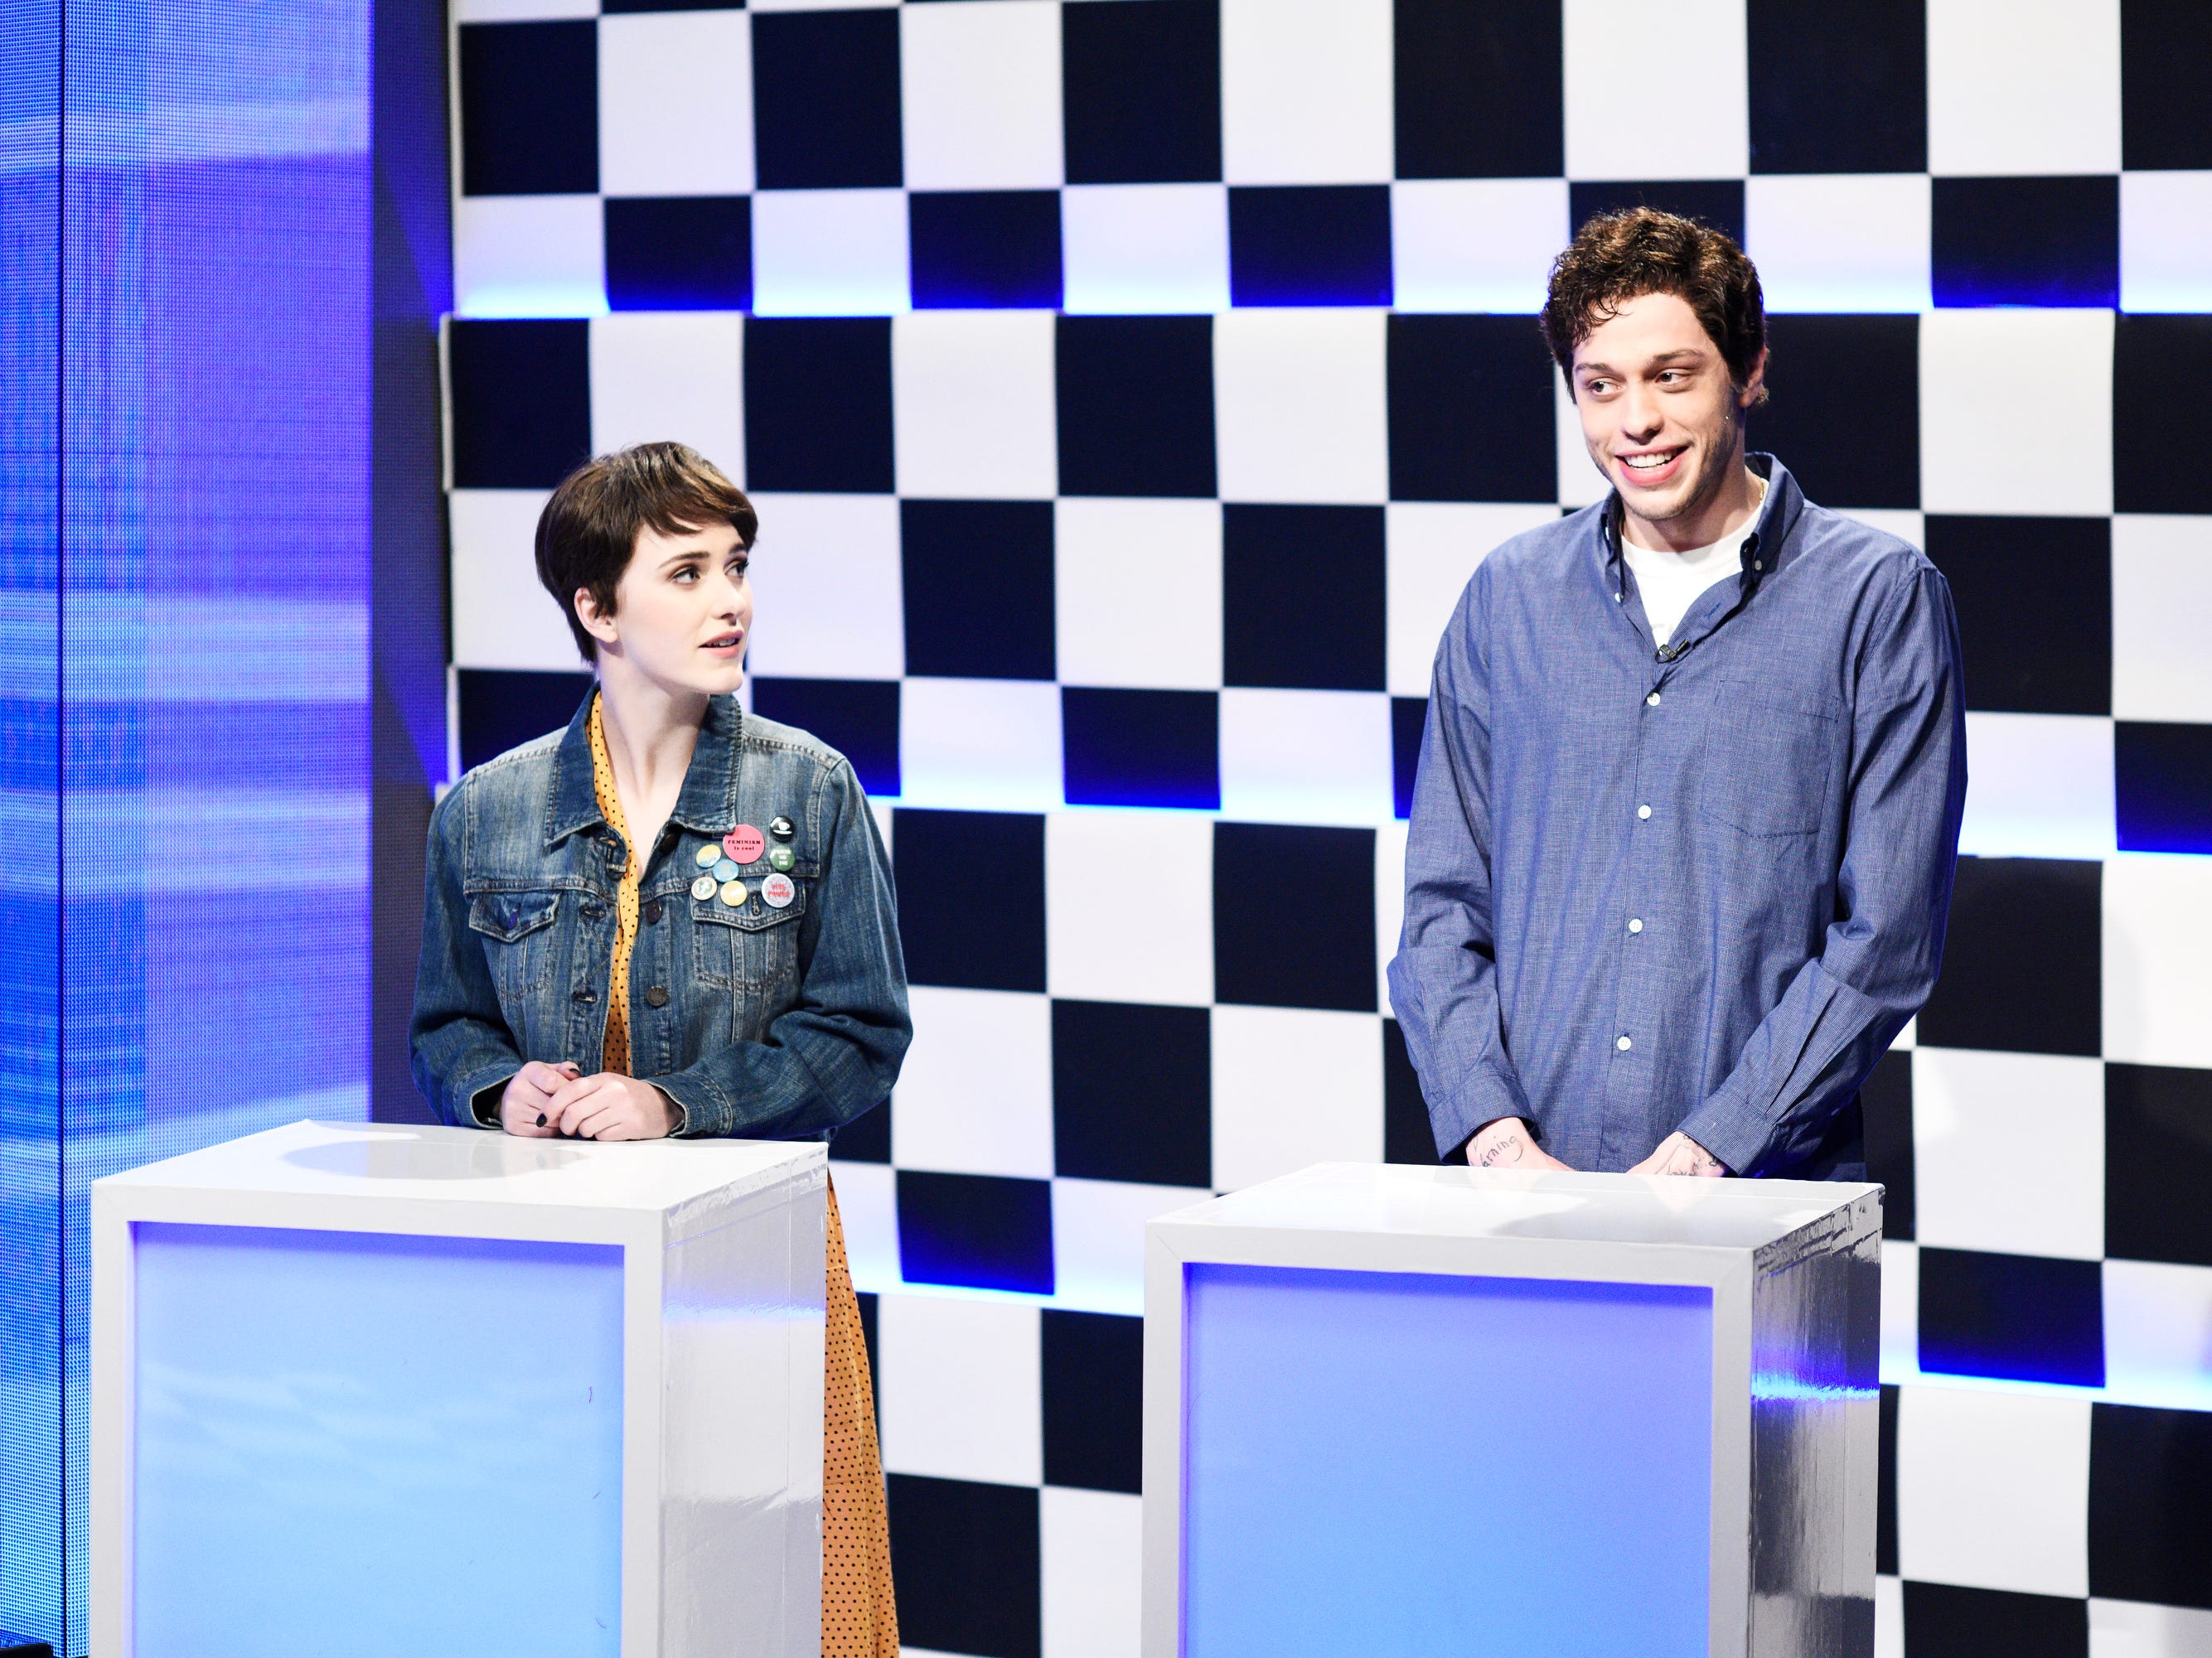 On the  Jan. 19 episode, host Rachel Brosnahan took part in a game show  pitting Millennials against Baby Boomers  alongside Pete Davidson.